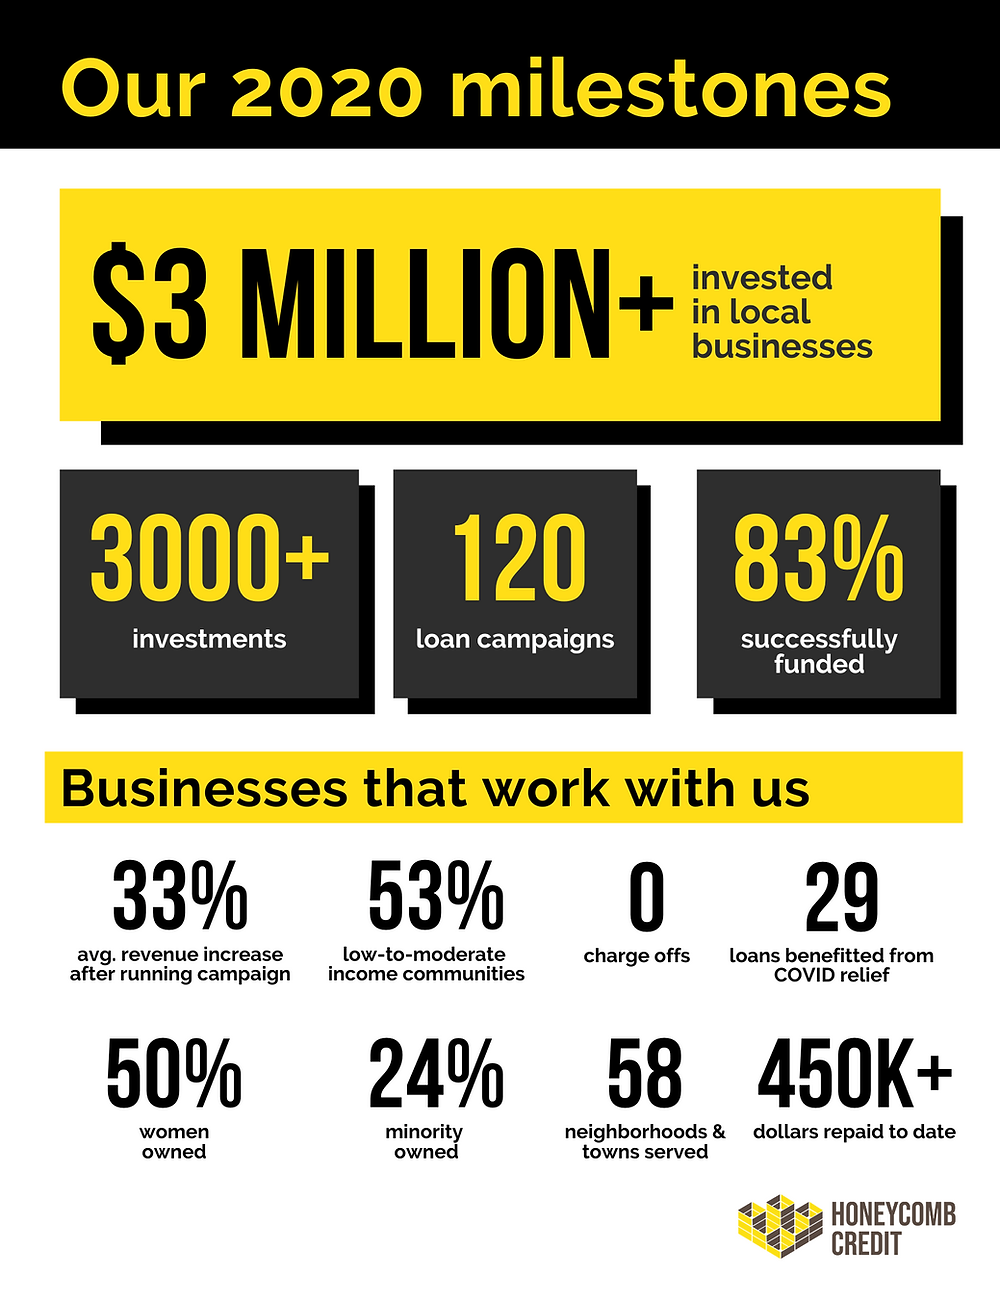 An infographic showing Honeycomb Credit's 2020 milestones, including $3 million + invested in local businesses